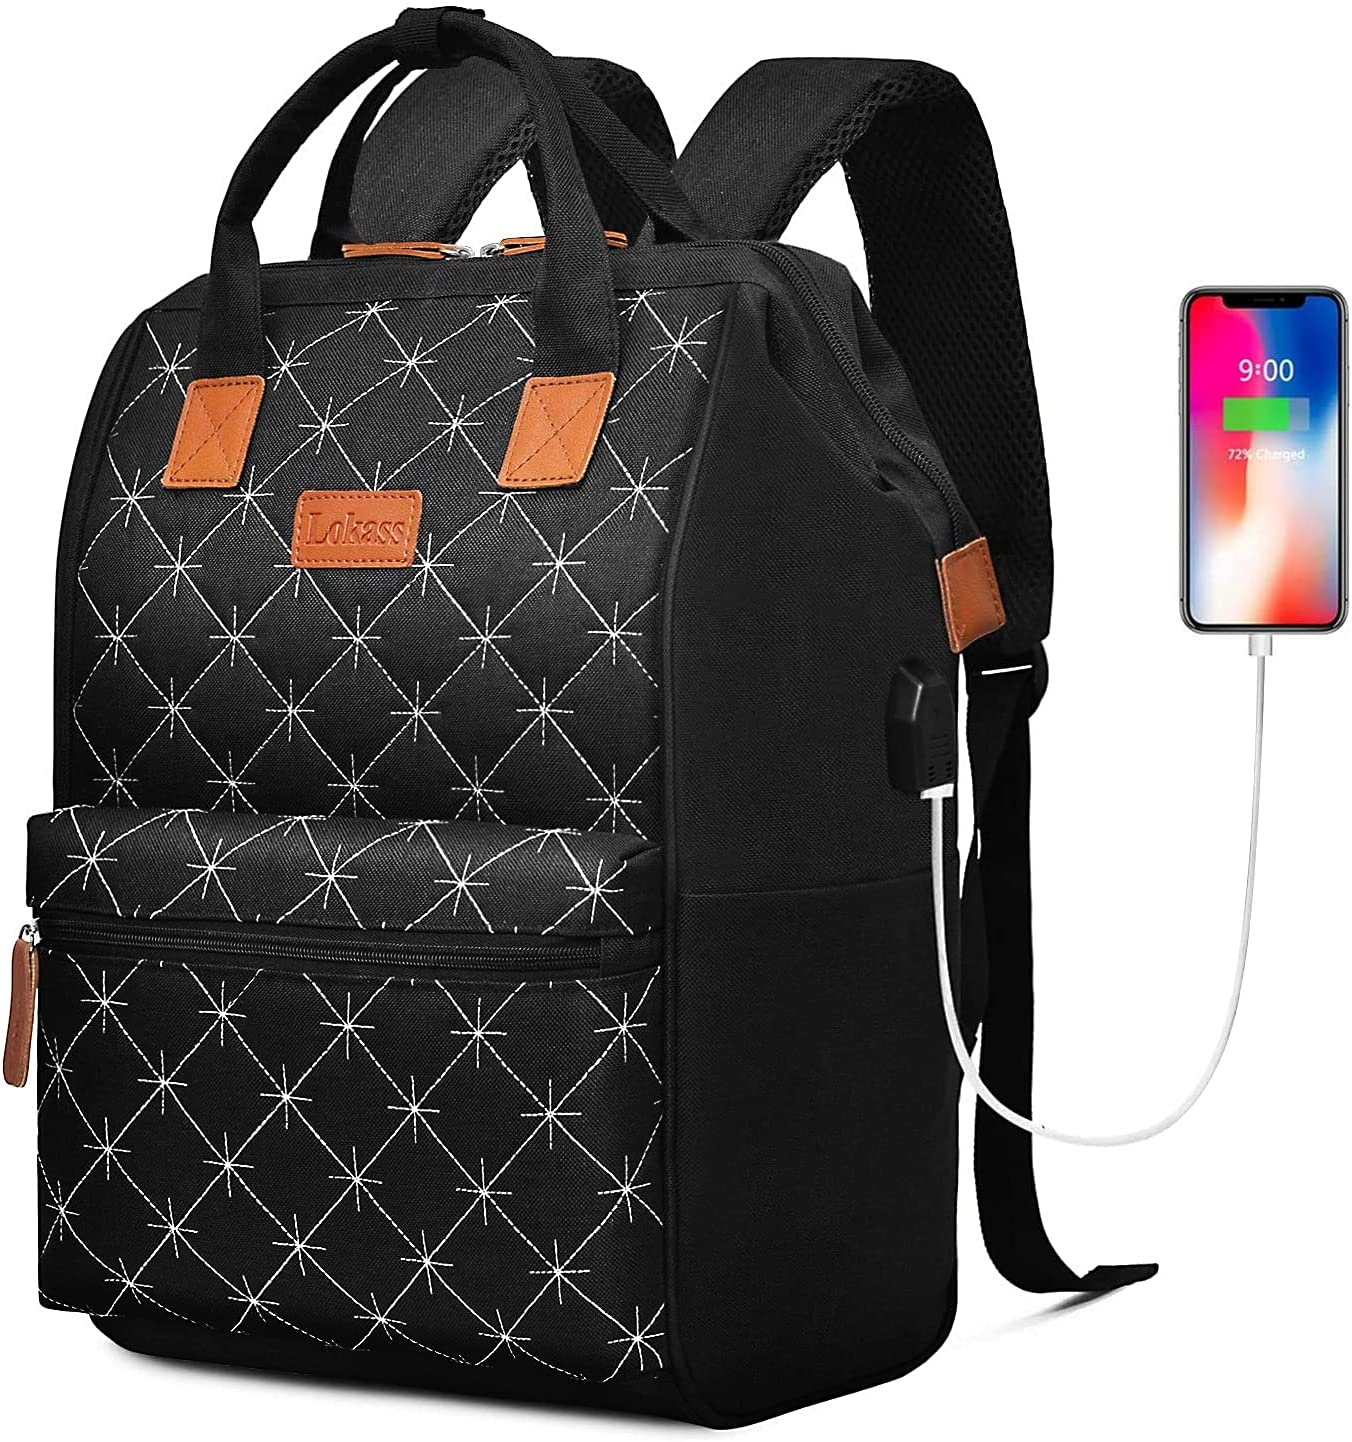 BRINCH Laptop Backpack 15.6 Inch Wide Open Computer Laptop Bag College Rucksack Water Resistant Business Travel Backpack Multipurpose Casual Daypack with USB Charging Port for Women Men,Black-Diamond